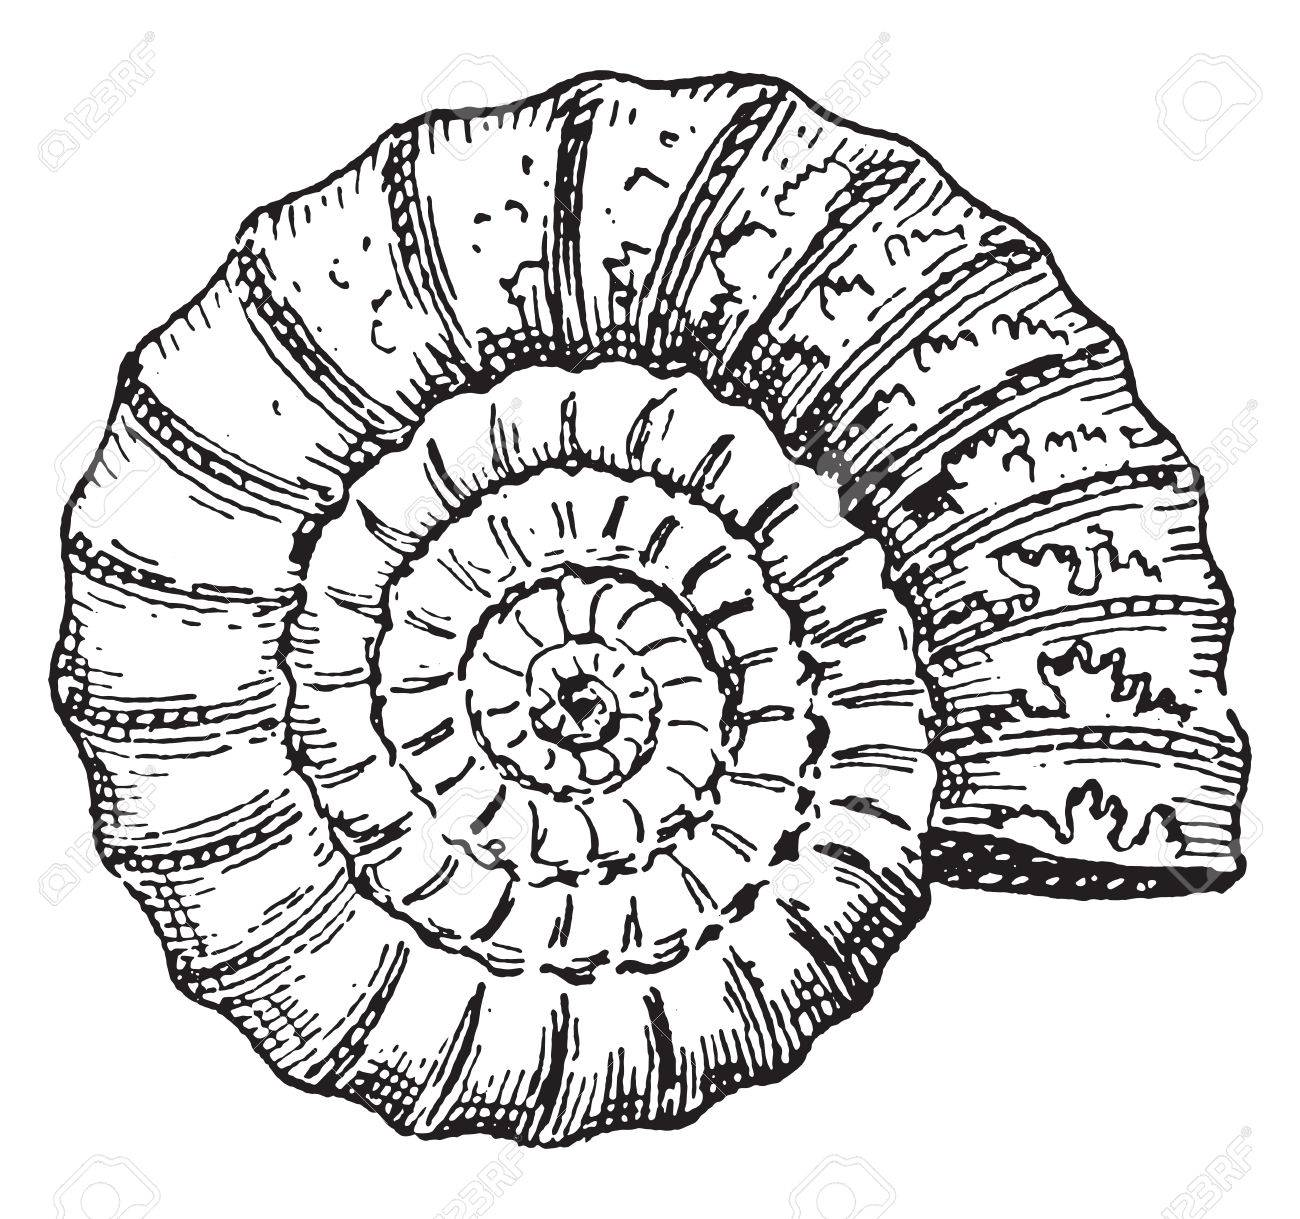 Ammonite, vintage engraved illustration. Dictionary of words and things - Larive and Fleury - 1895. - 42027872